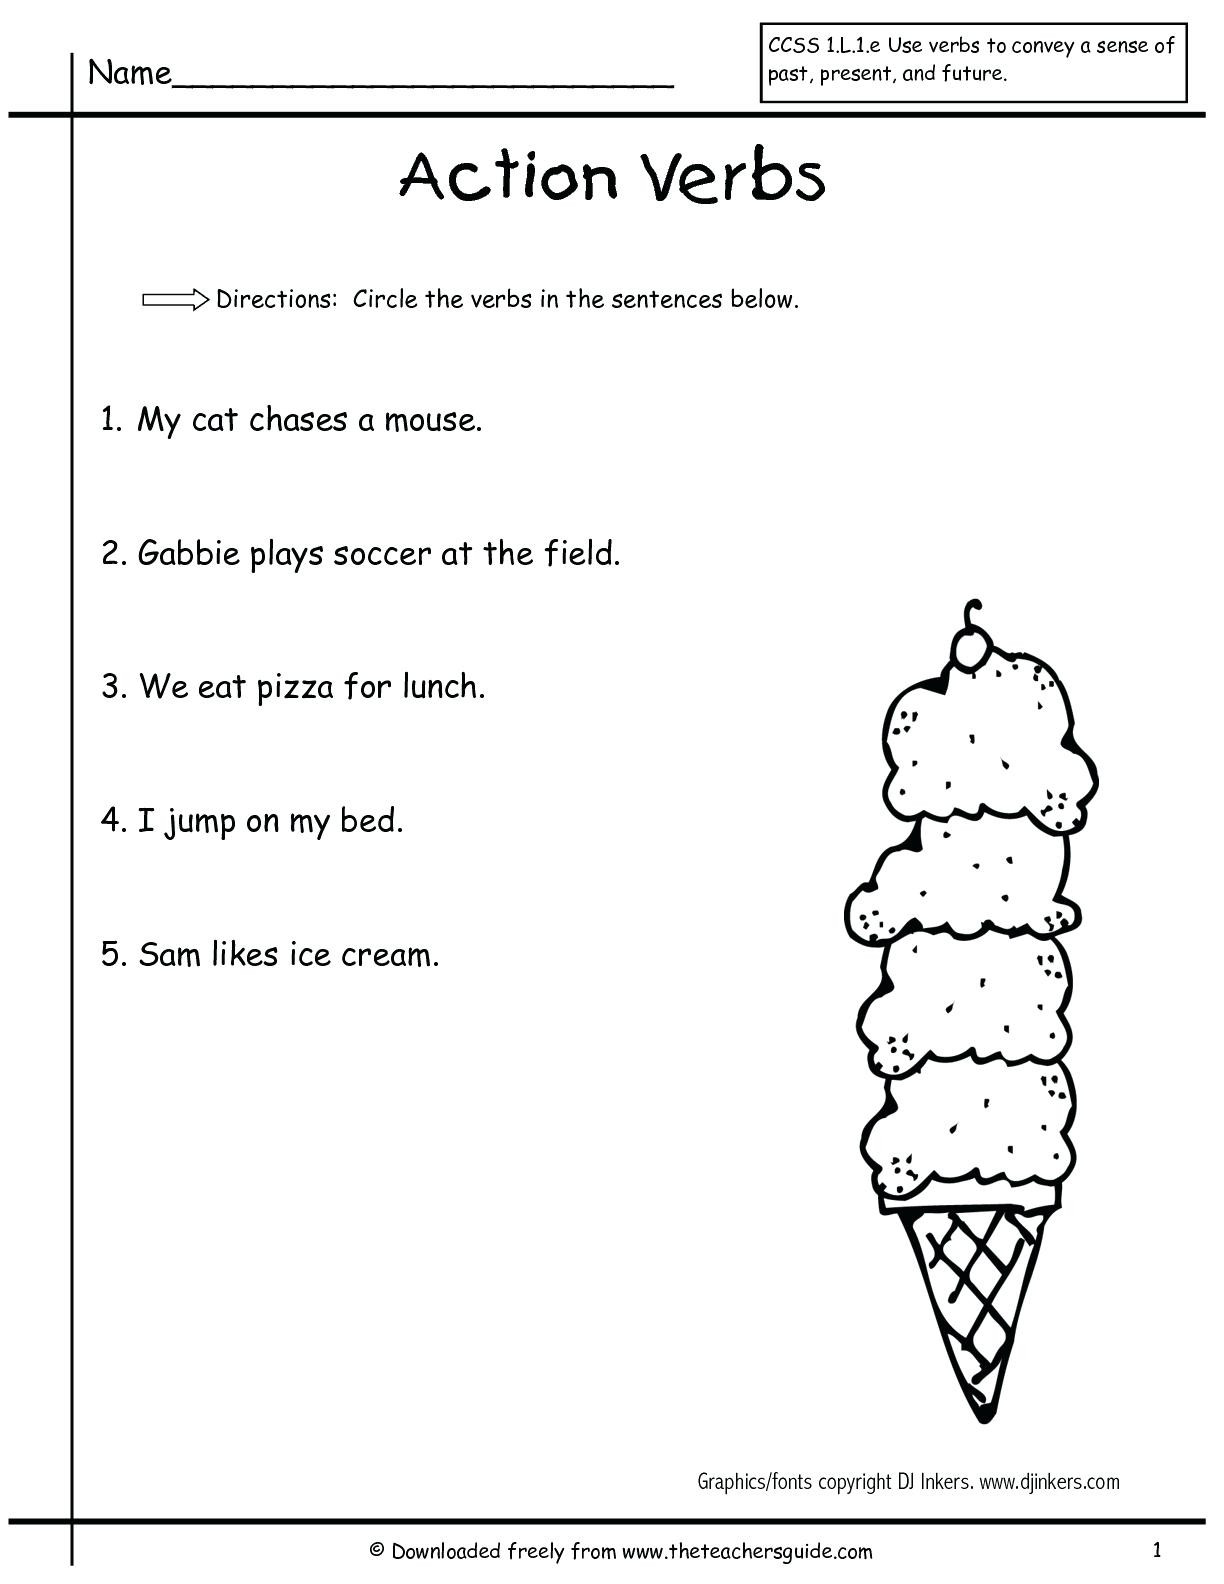 Verb Tense Worksheets 1st Grade Present Tense Verbs Worksheets for 1st Grade لم يسبق له Ù…Ø ÙŠÙ""